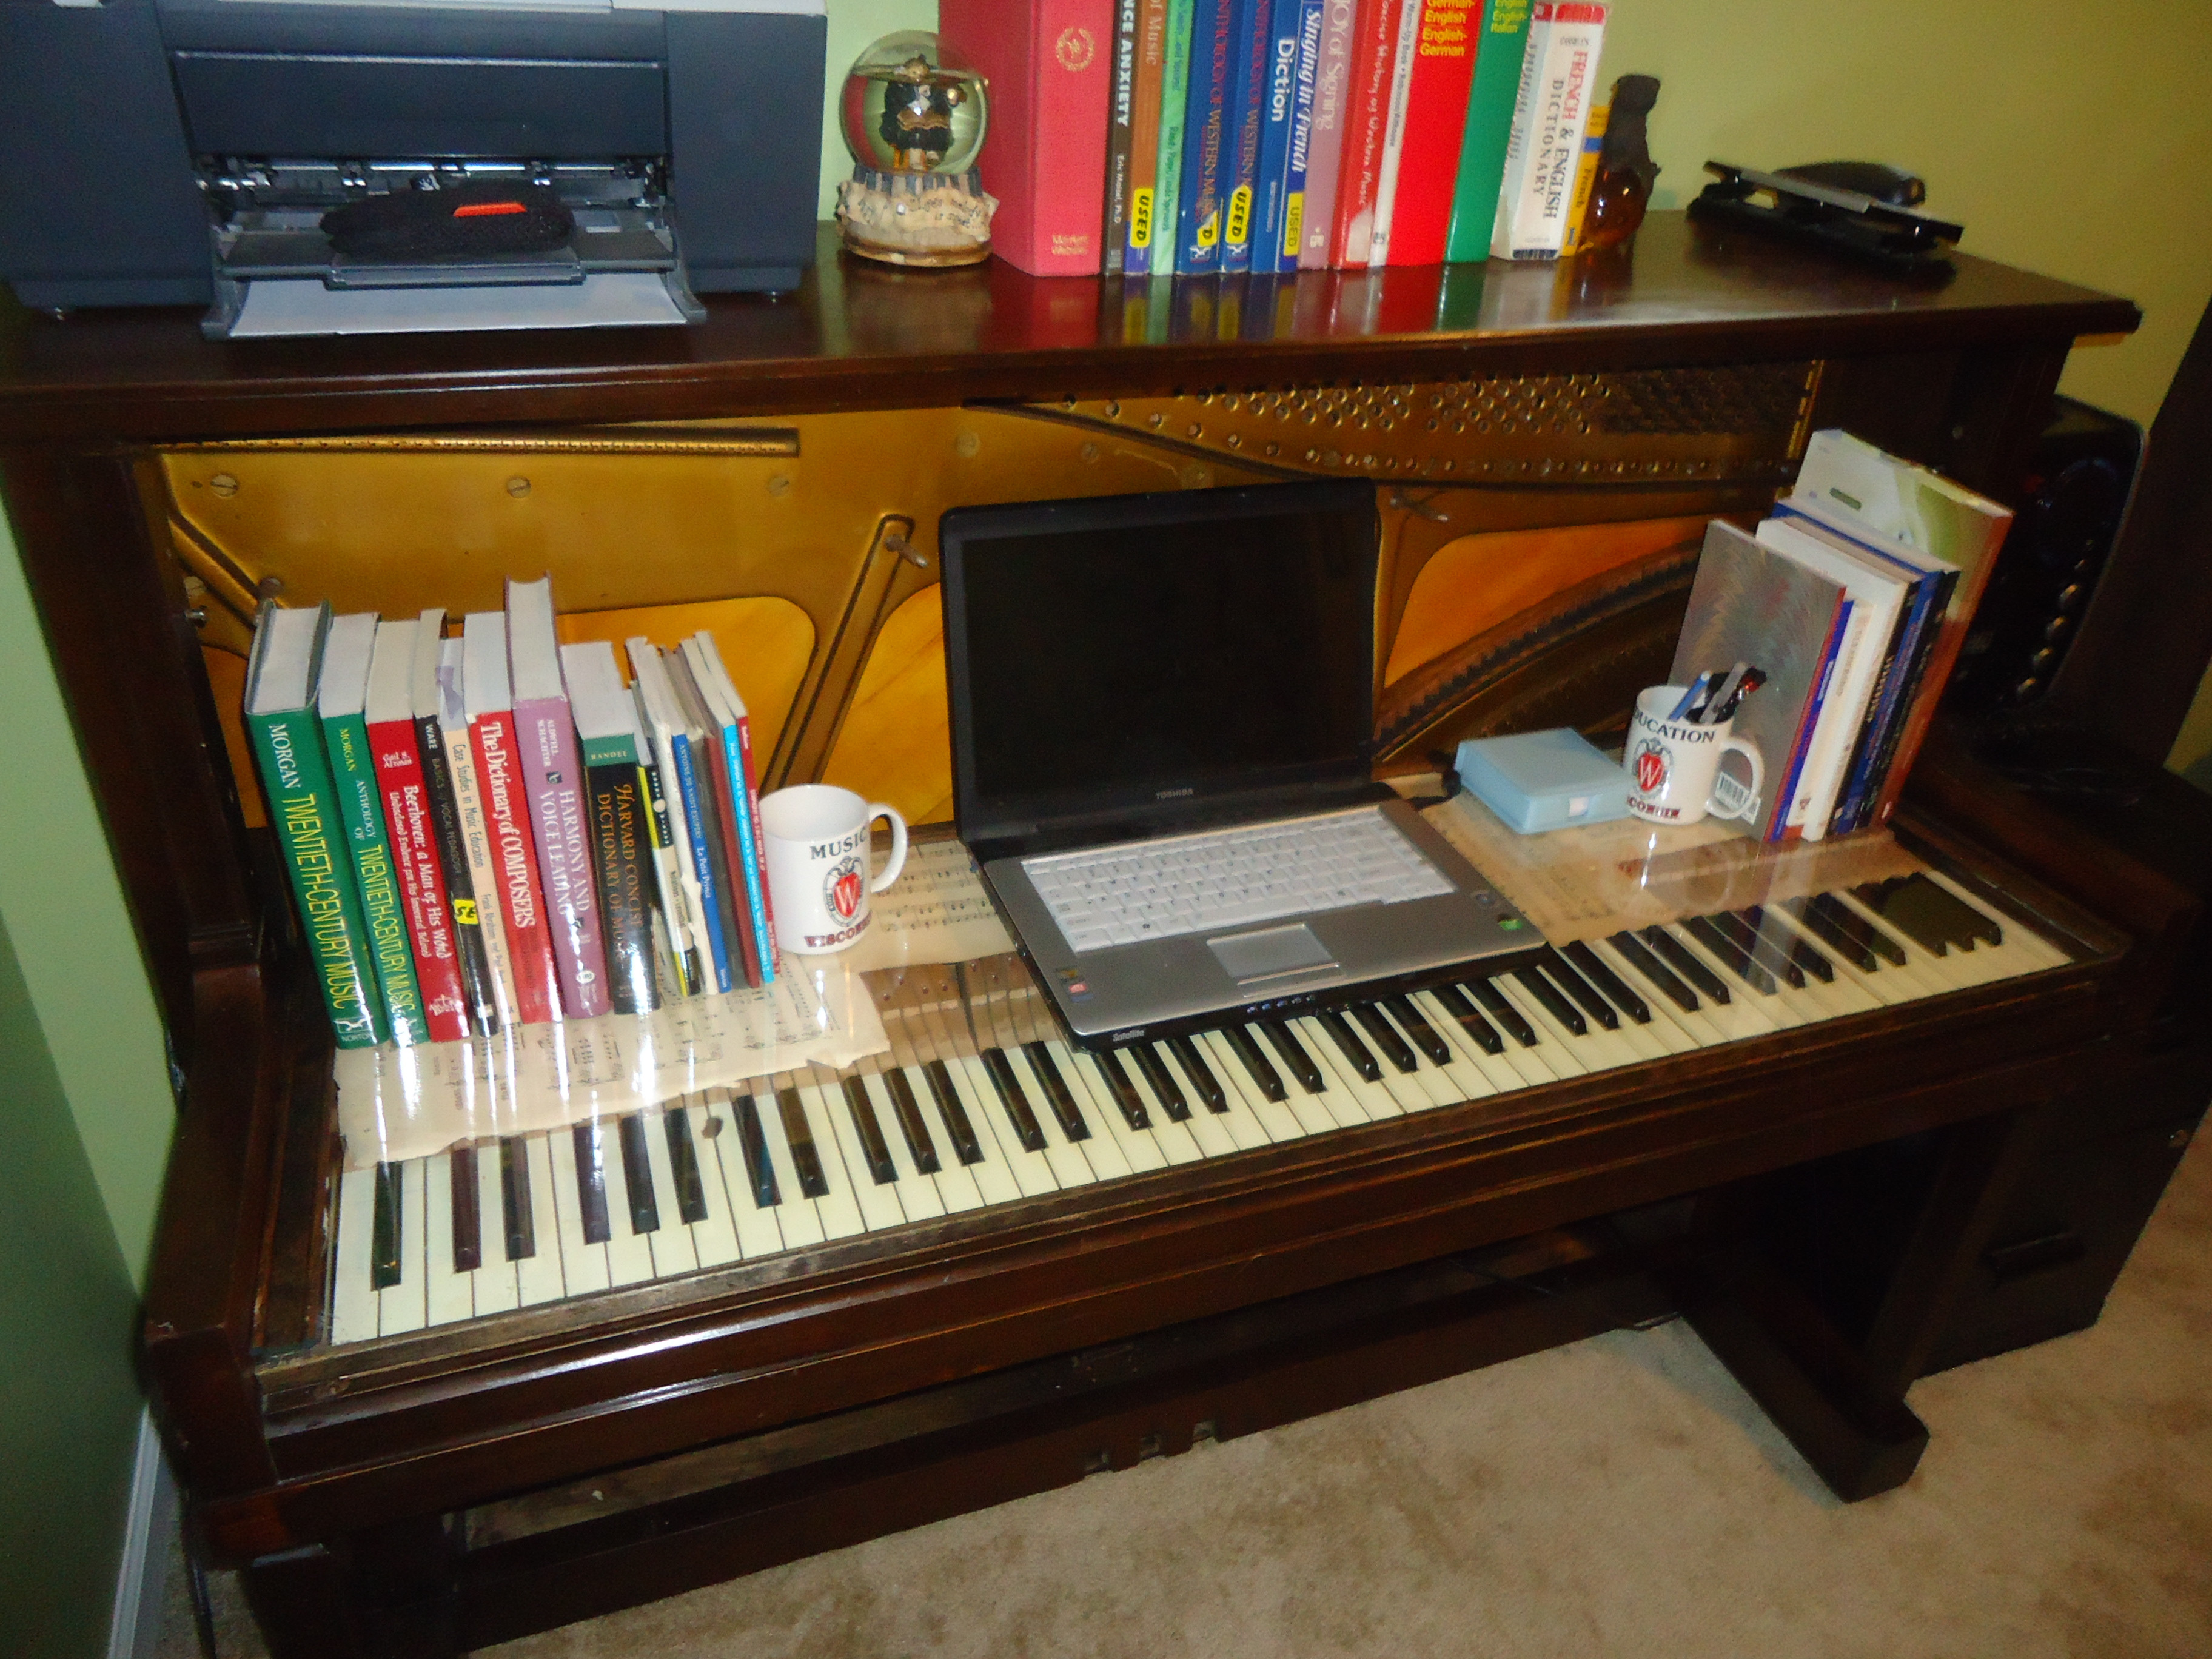 Best ideas about DIY Computer Desks . Save or Pin DIY puter Desk from an old upright piano Now.